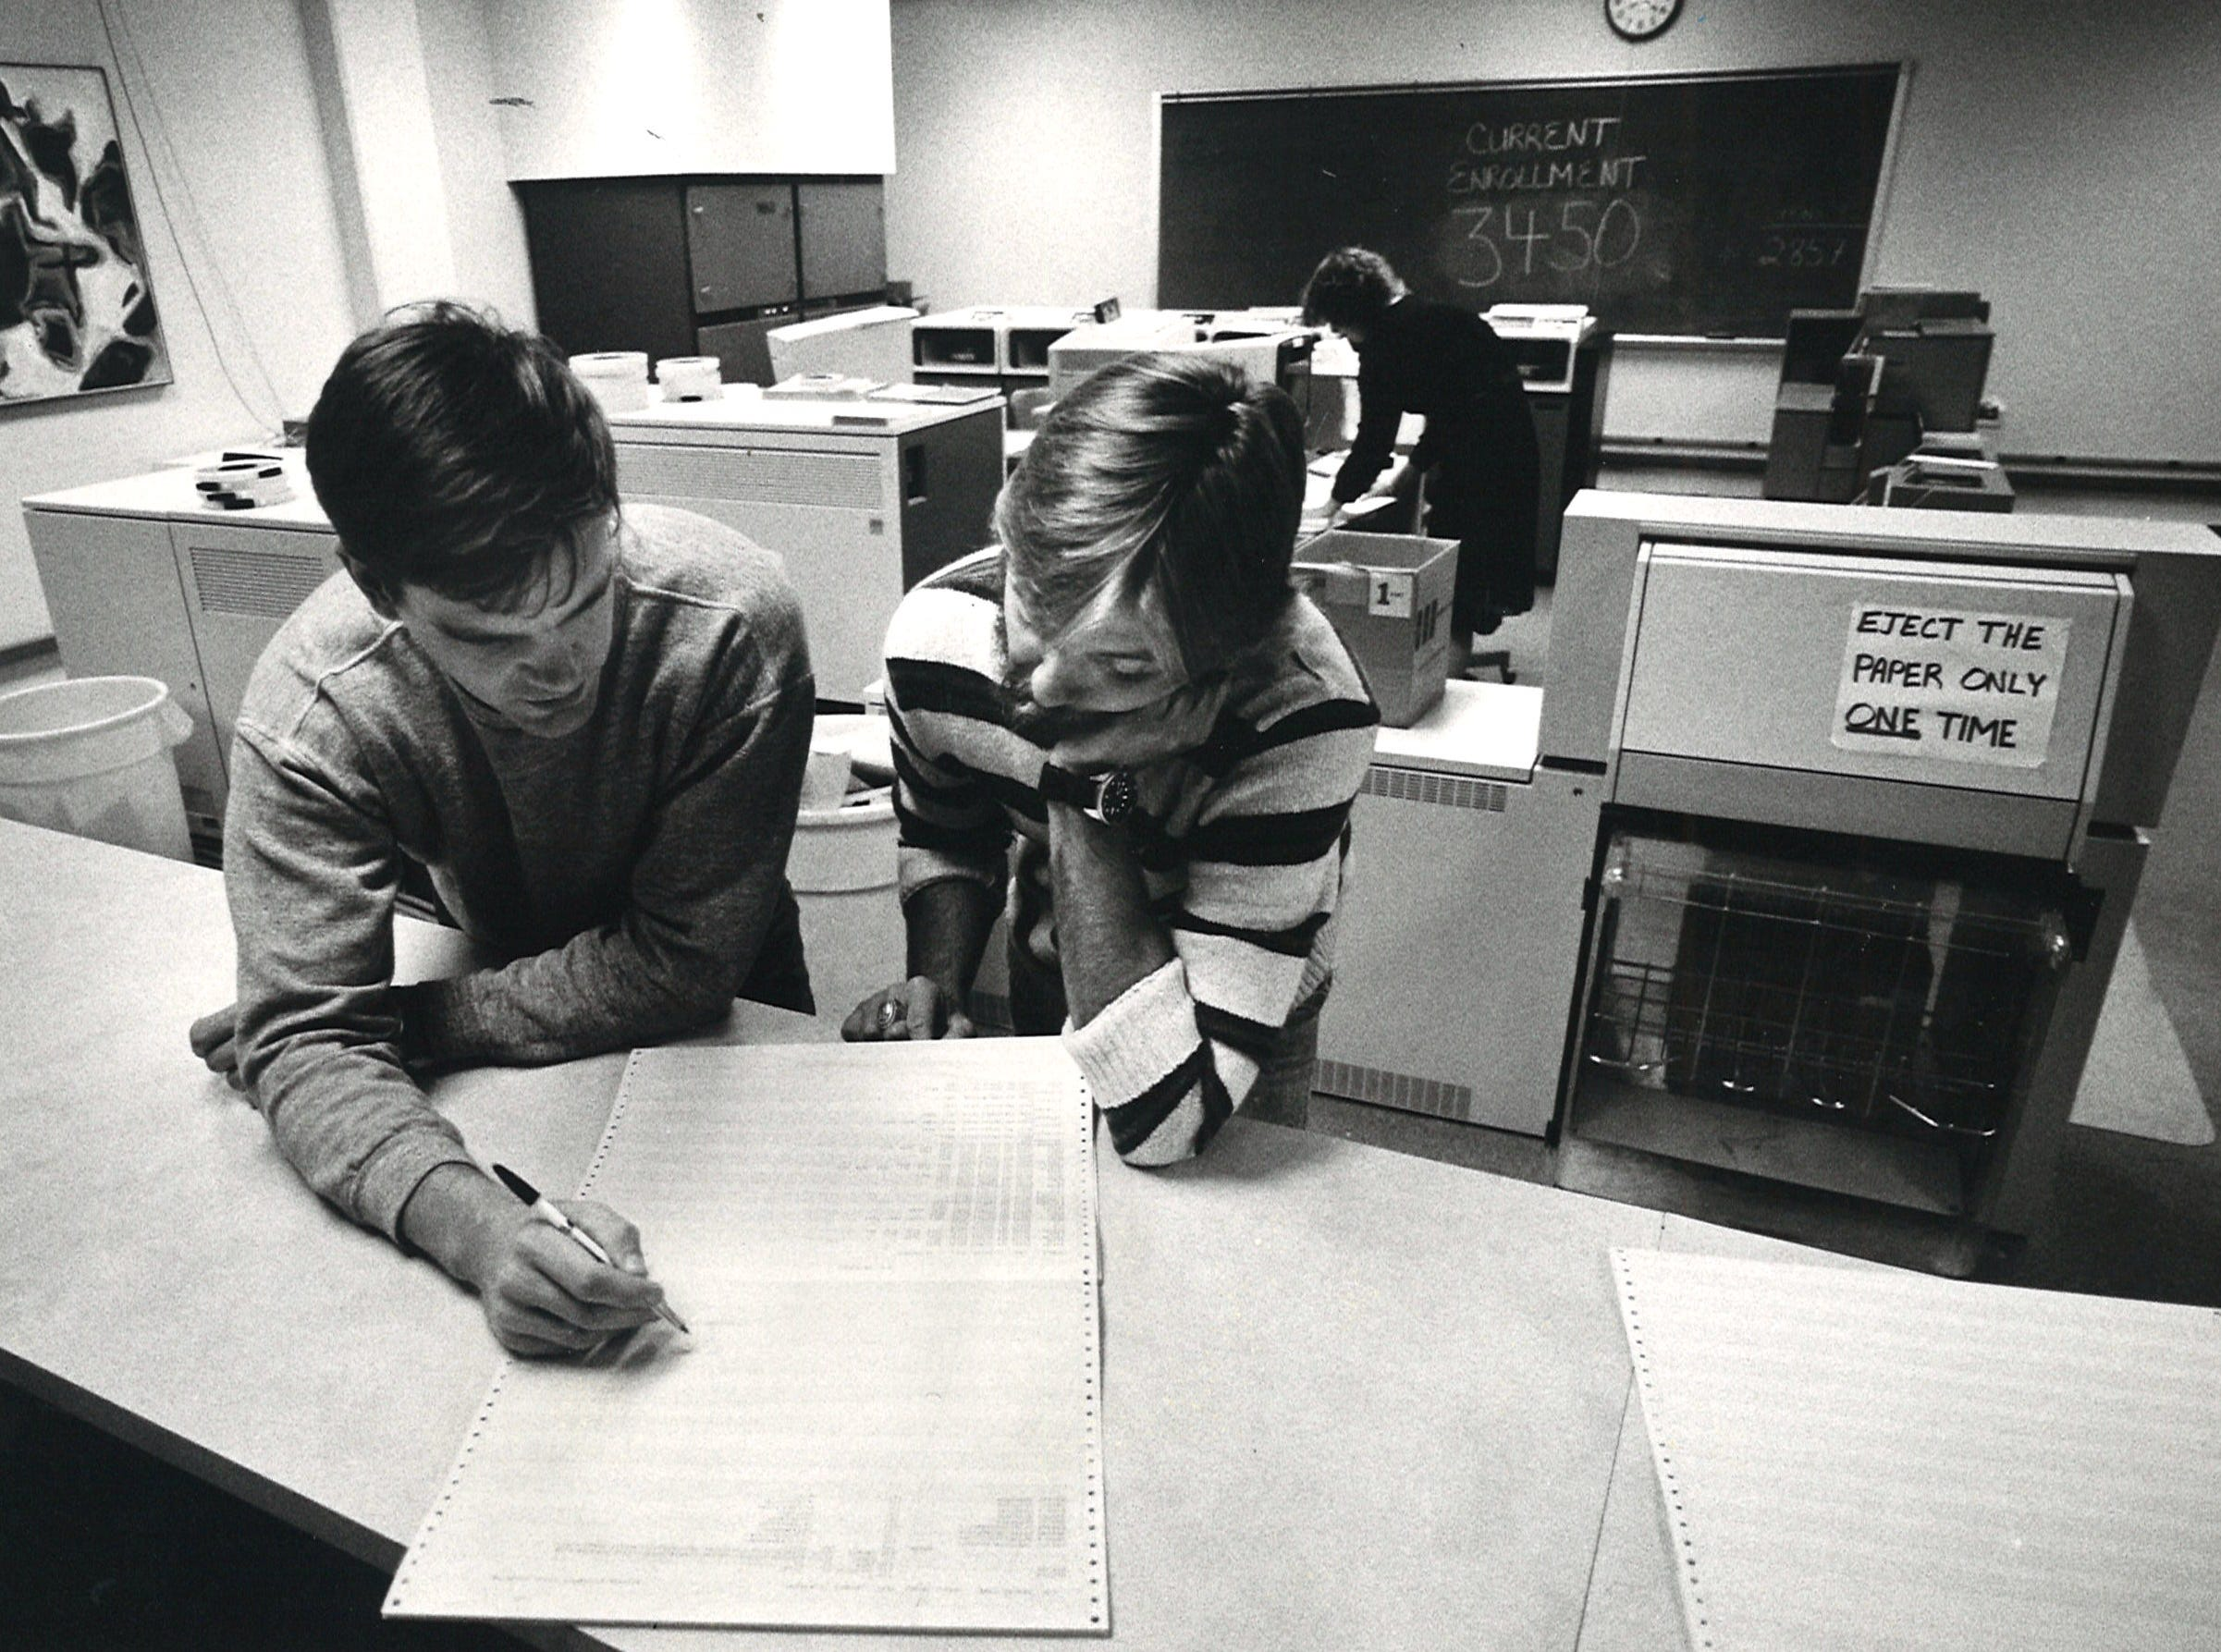 Stewart Hunt (left) and Jeff Grable (right), both graduate students in computer science at Corpus Christi State University, discuss a program designed by HUnt in the CCSU computer center in Corpus Christi Hall on April 7, 1983.